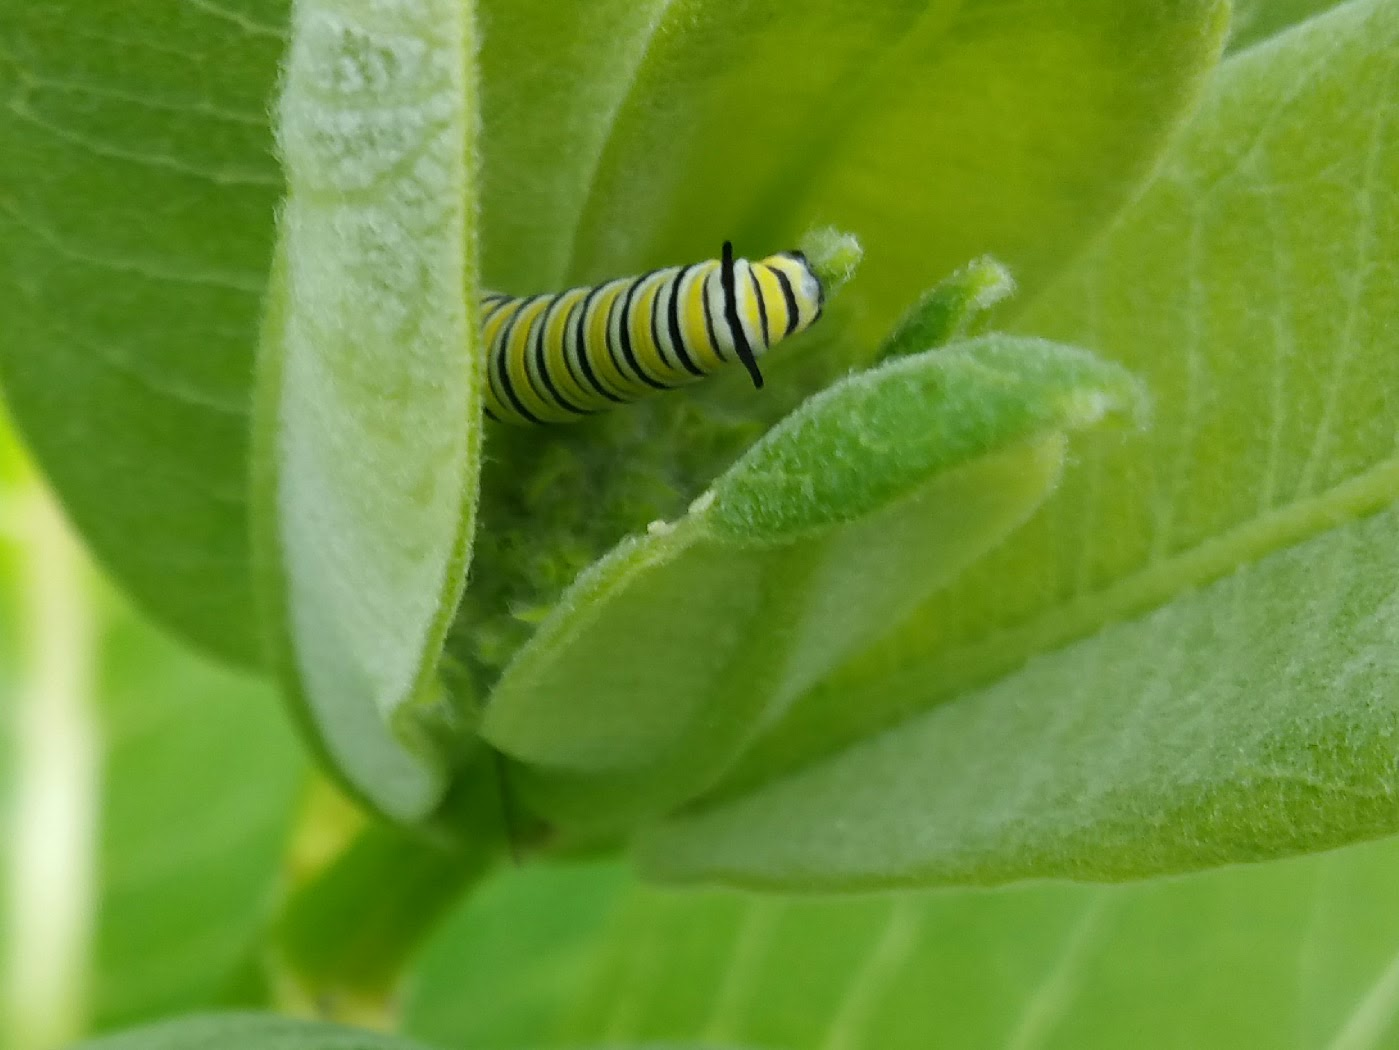 Monarch butterfly caterpillar - Ellie Kennard 2017